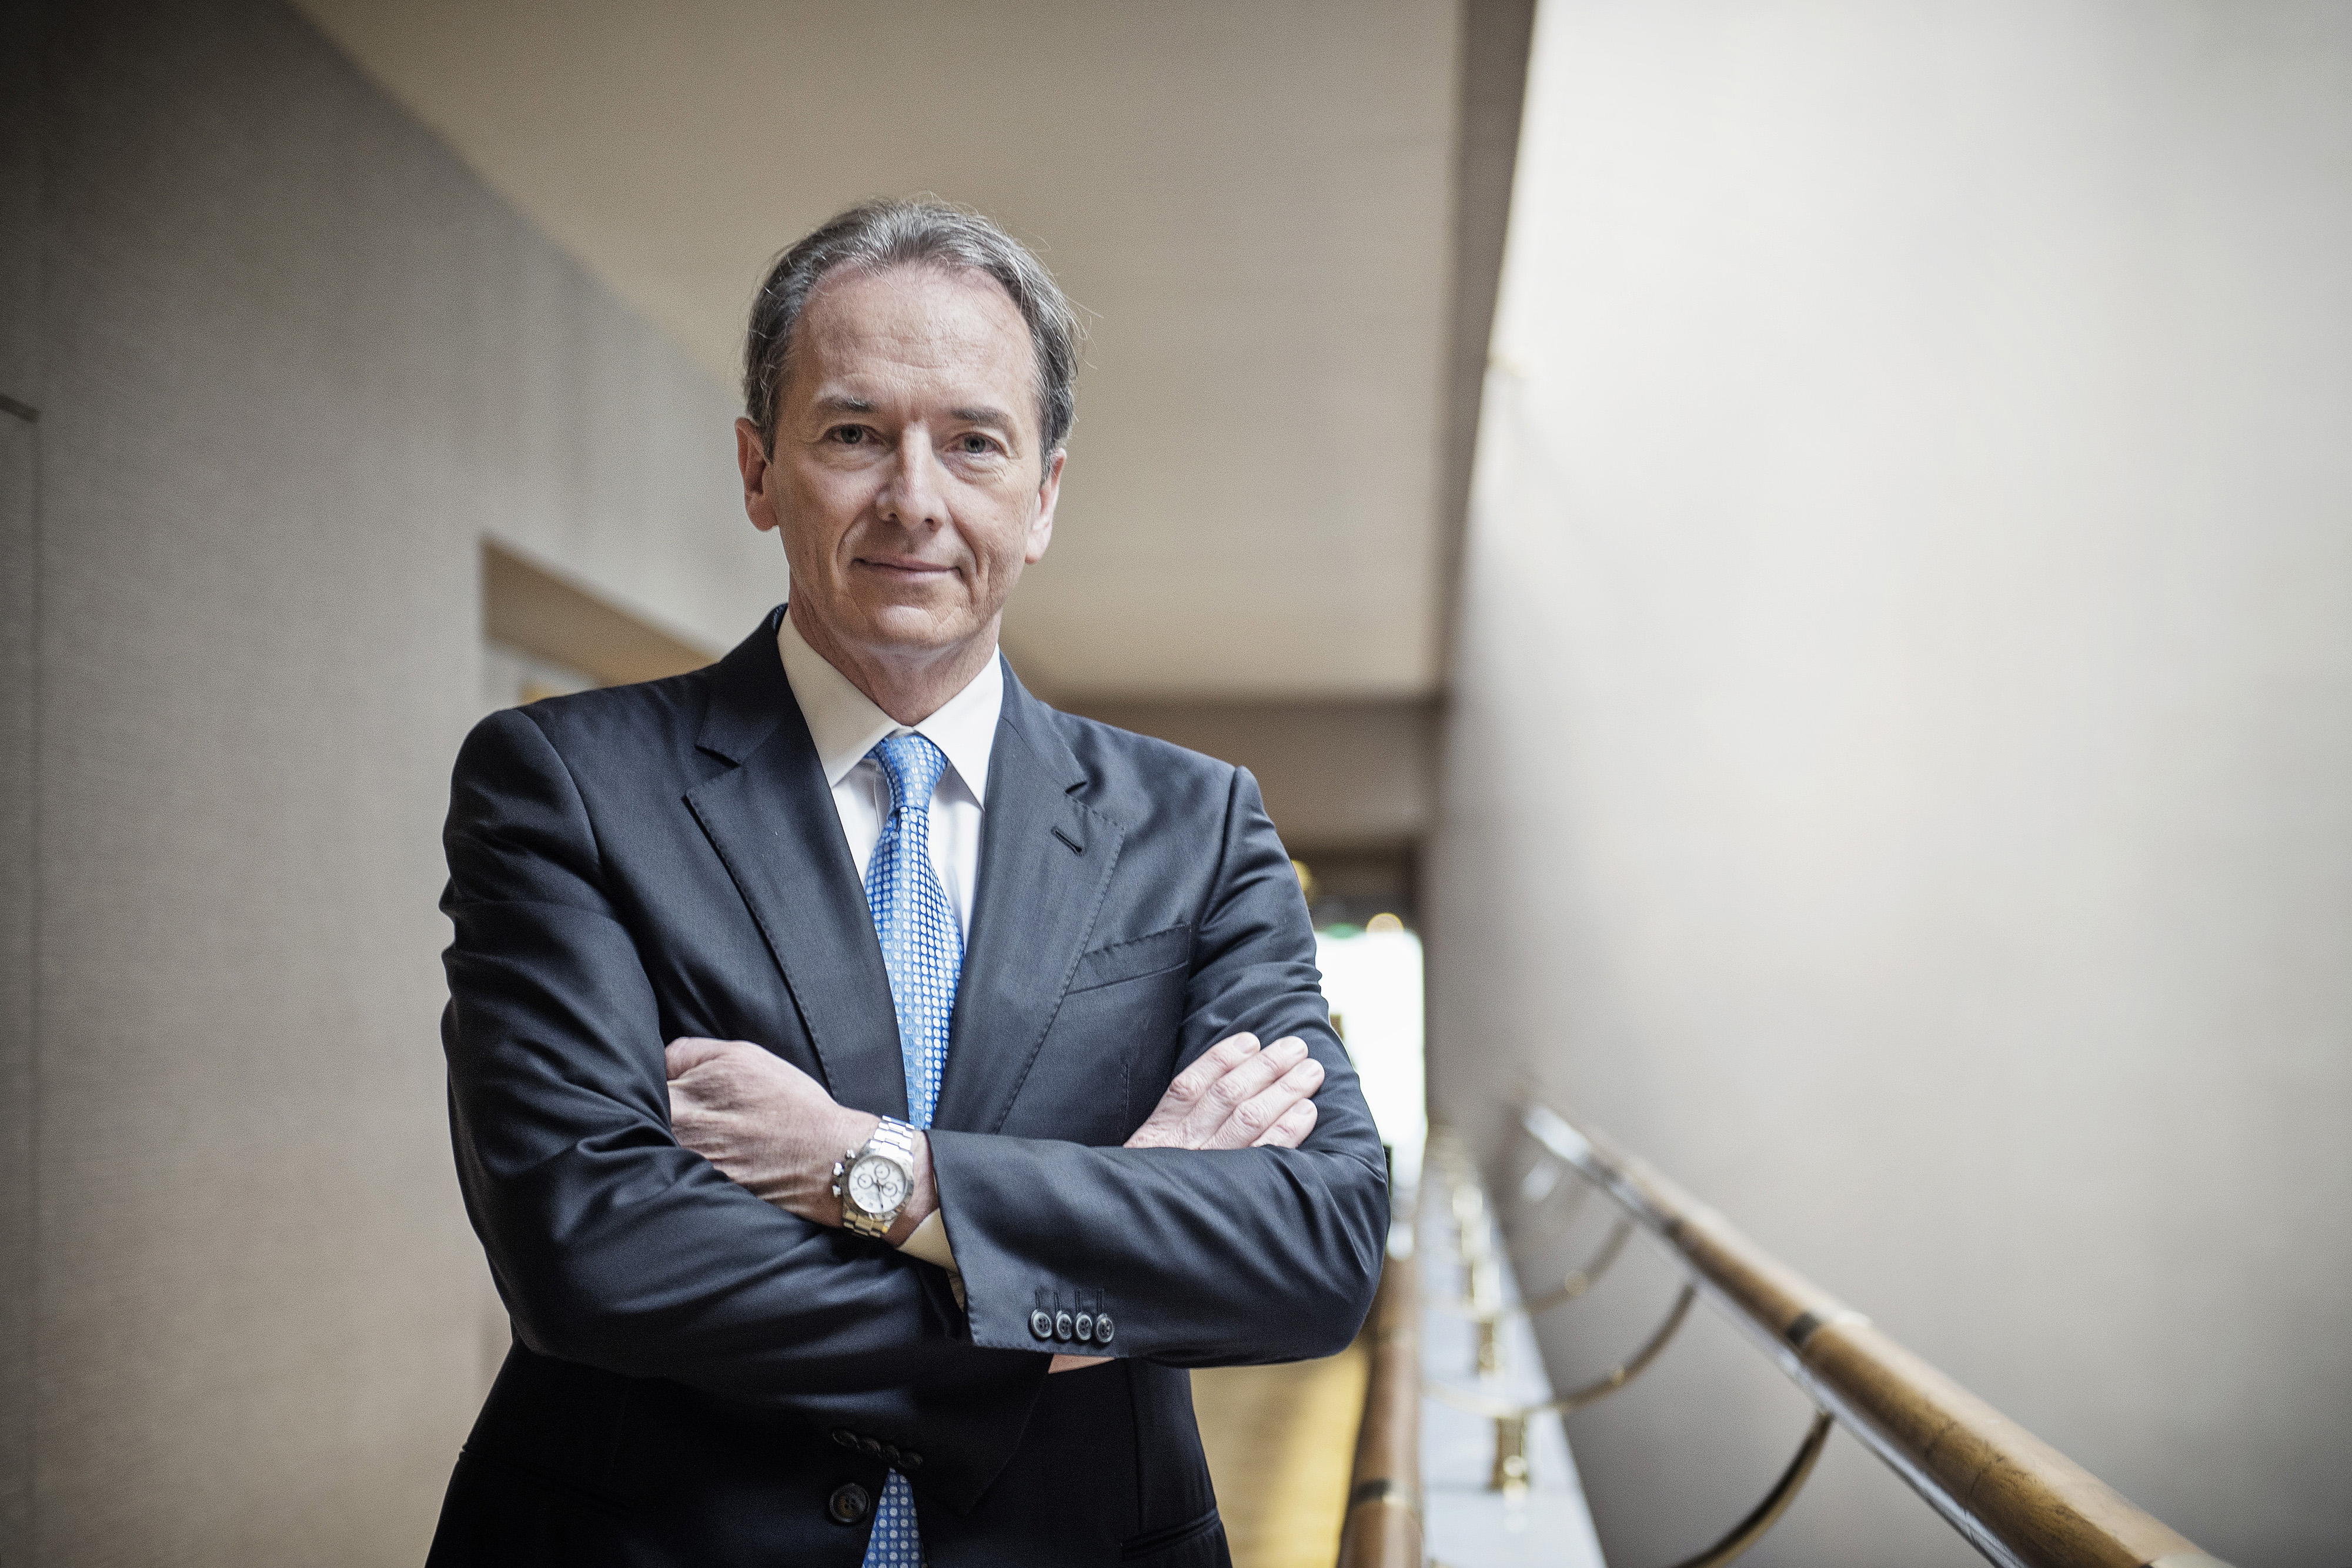 Morgan Stanley Chief Executive Officer James Gorman Interview